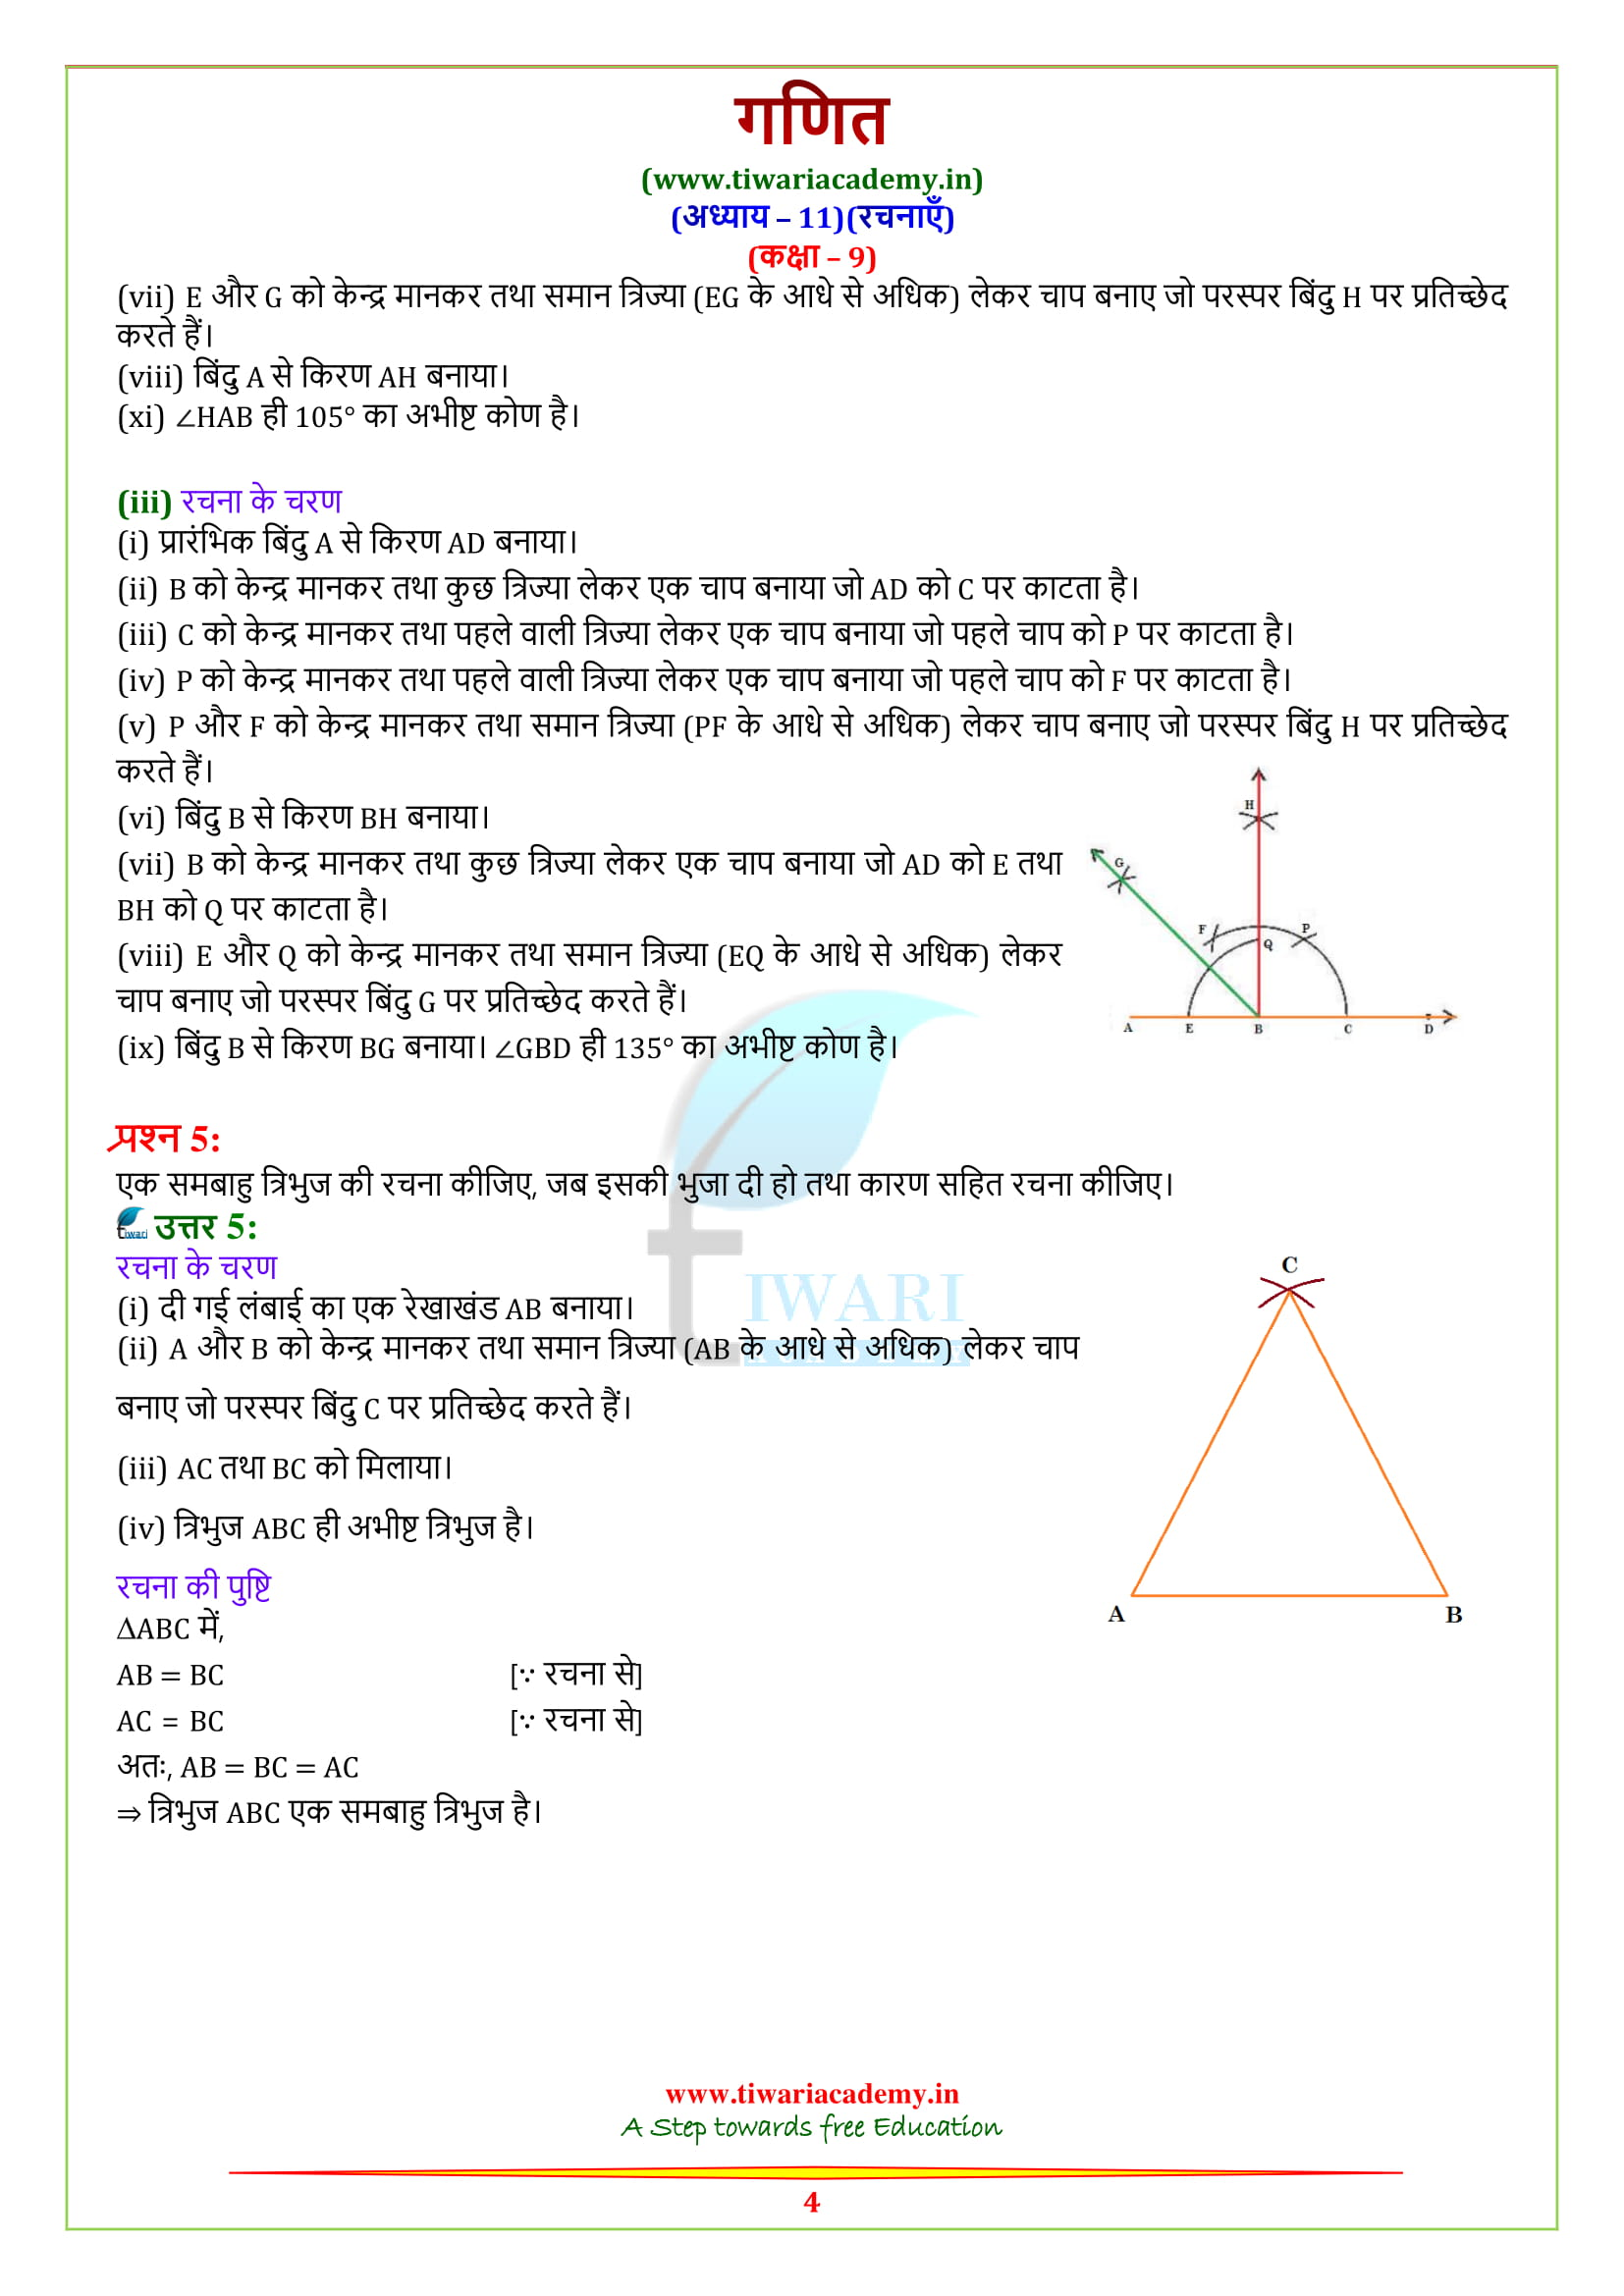 NCERT Solutions for class 9 Maths Exercise 11.1 updated for 2018-19